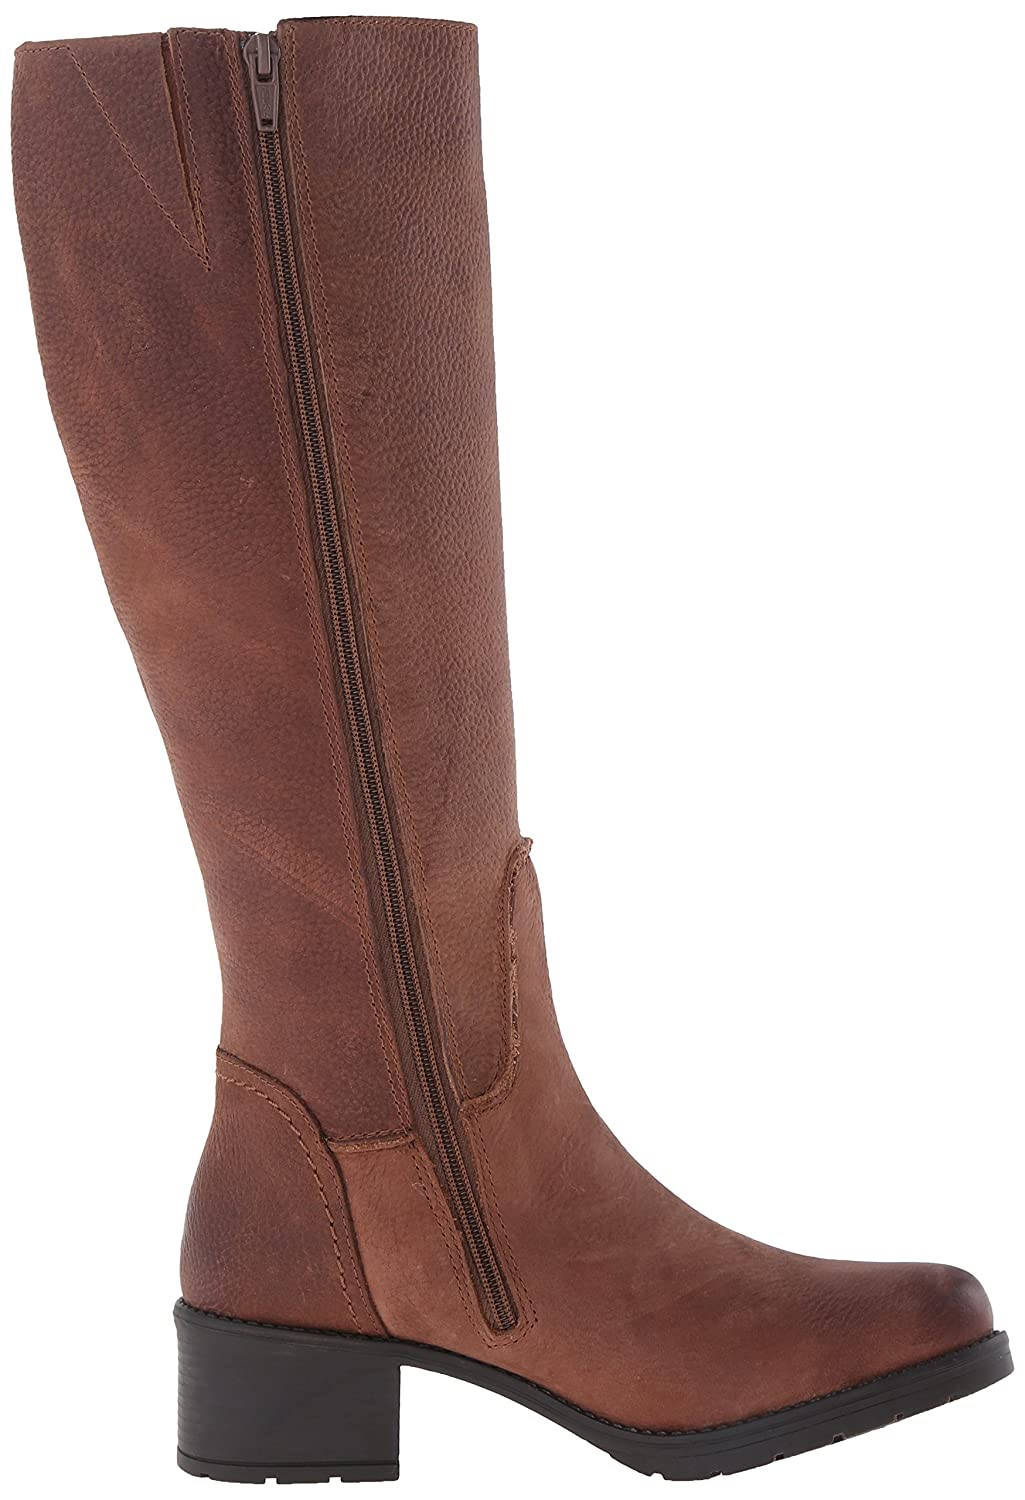 Rockport Women's City Casuals Rola Tall Riding Boot: Amazon.ca: Shoes &  Handbags